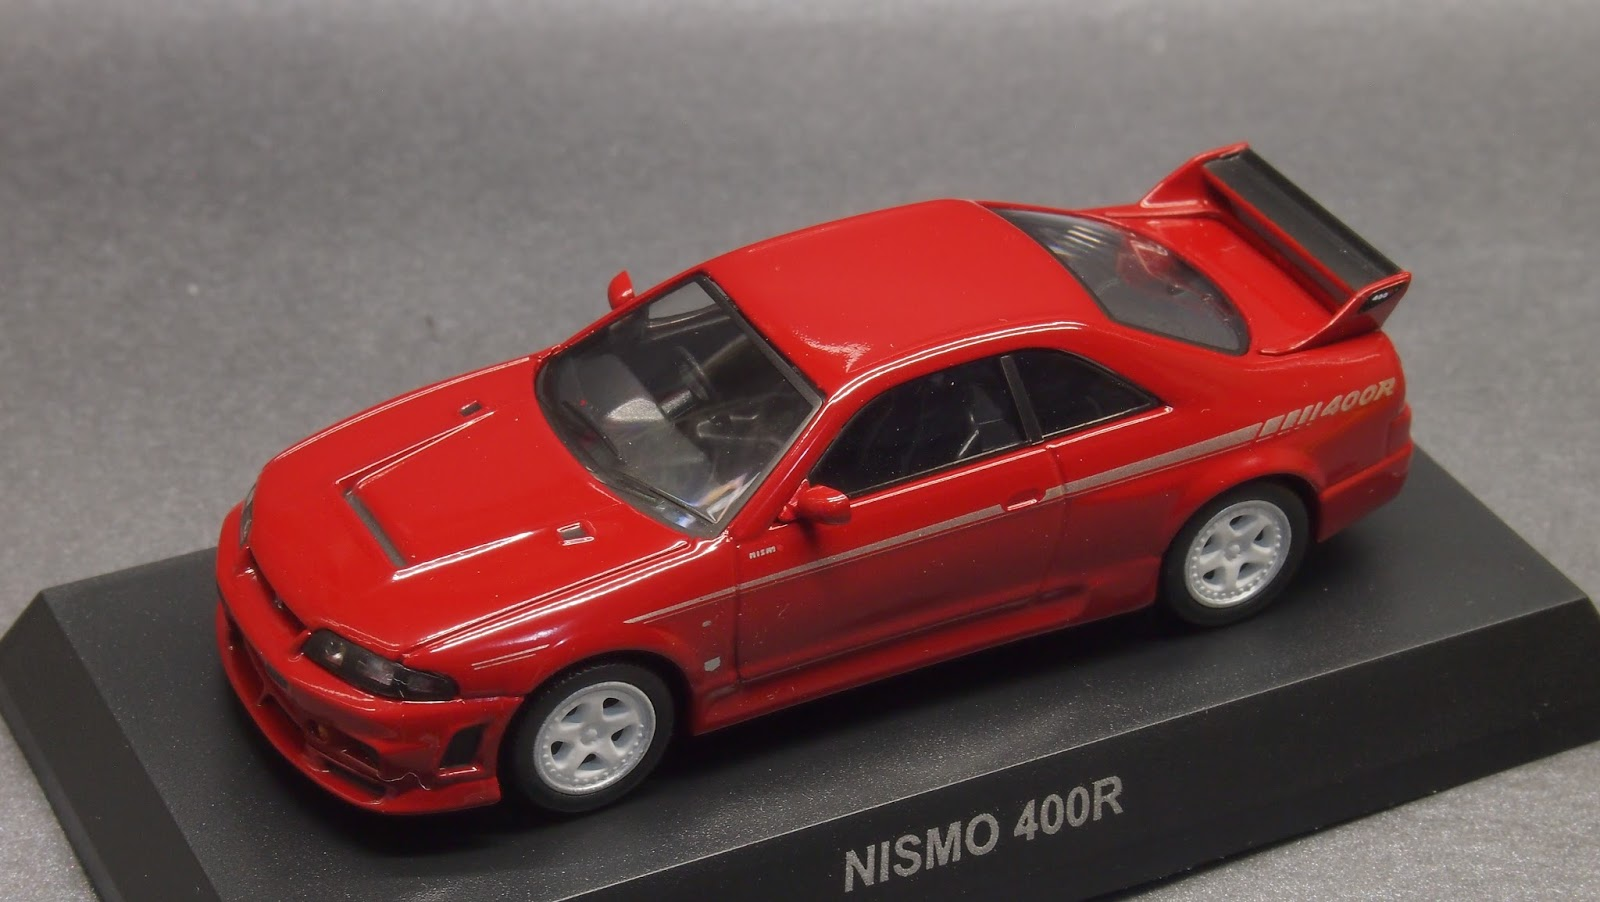 My 1 64 World Minicar Collection Kyosho 1 64 Nissan Nismo Minicar